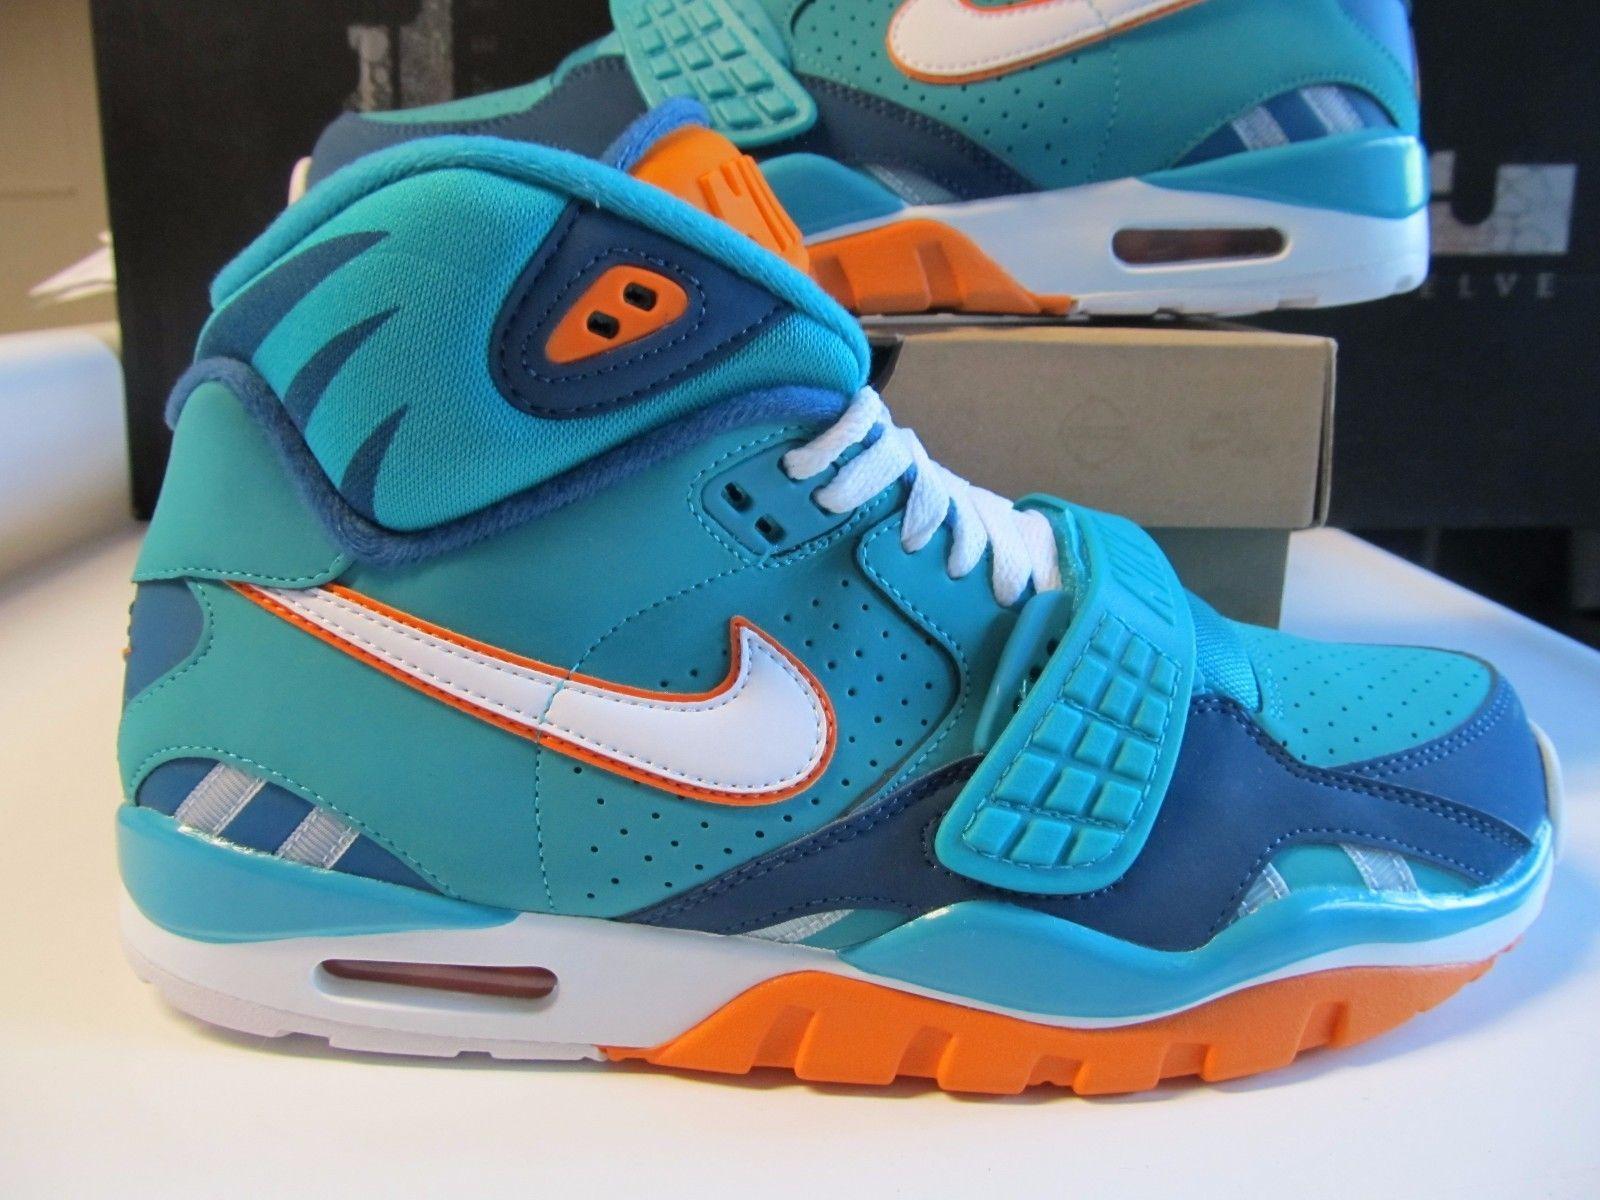 2c6aa07f04a6 Nike Air Trainer SC II QS NFL MIAMI DOLPHINS Turbo Green Blue Orange 614640  300